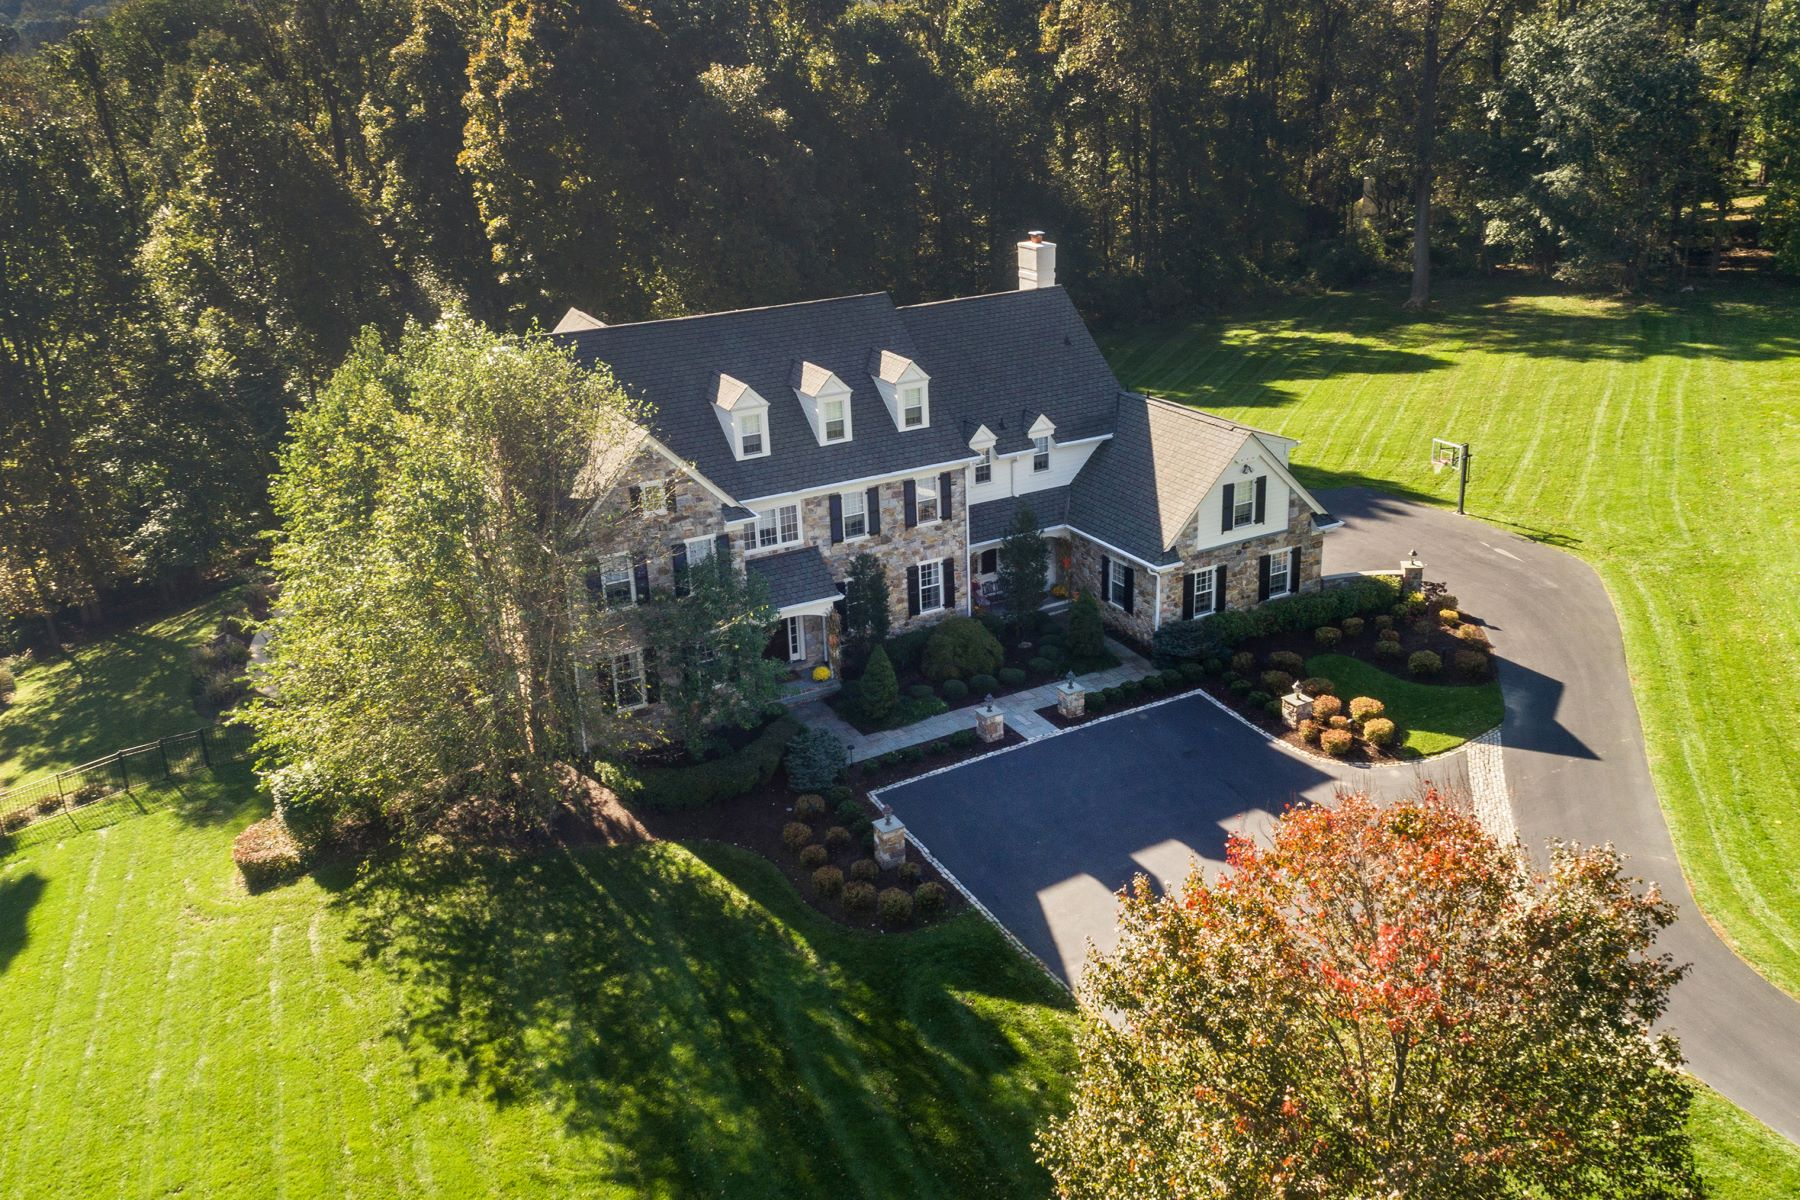 Single Family Home for Sale at 44 Farrier Ln 44 FARRIER LN Newtown Square, Pennsylvania 19073 United States